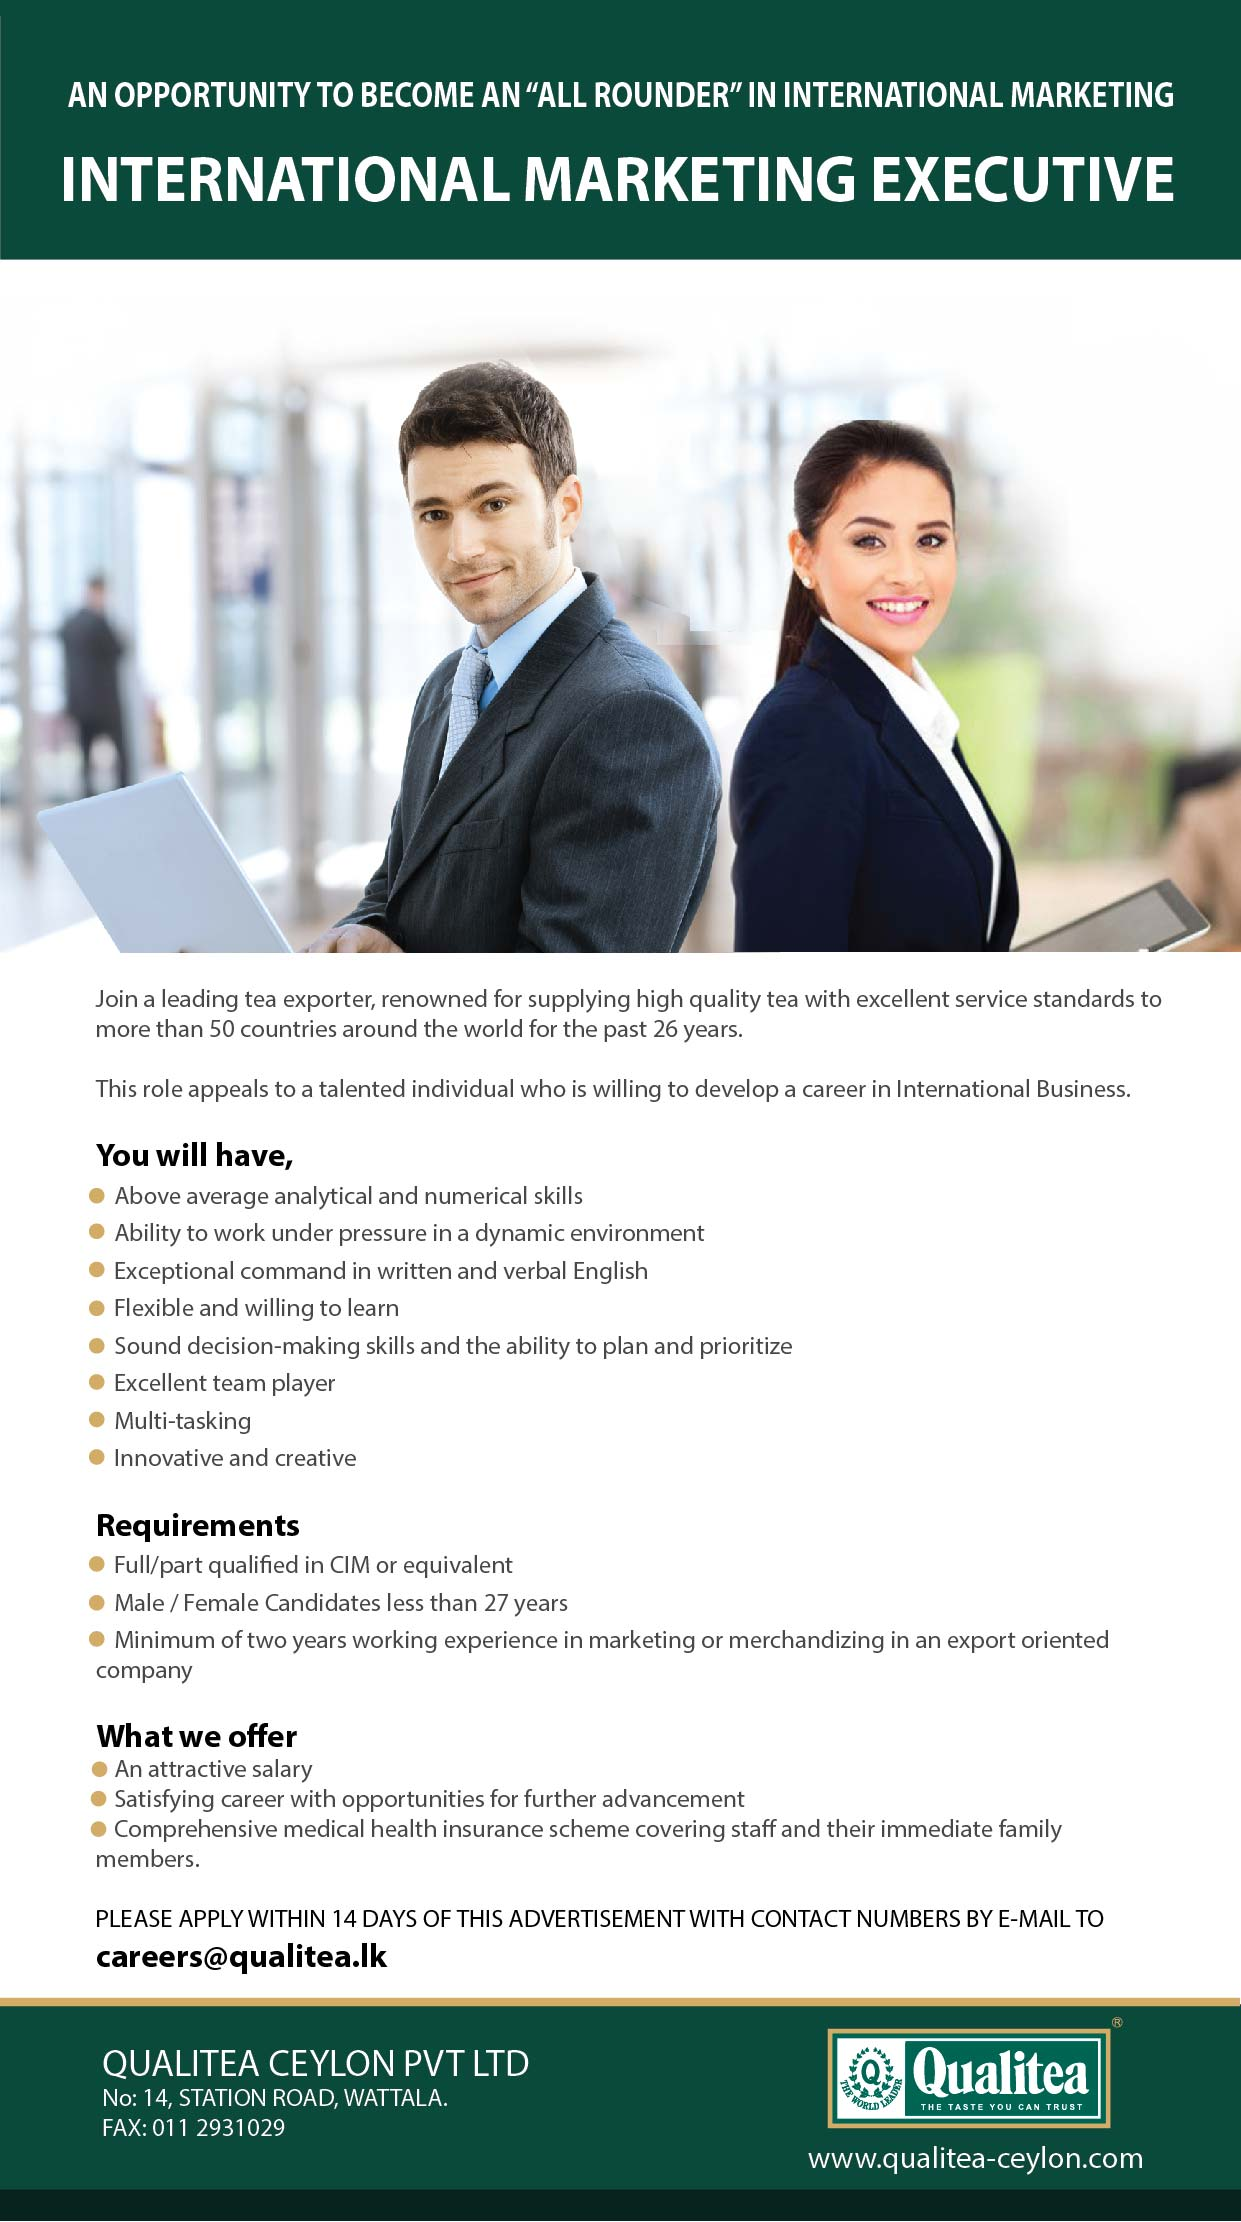 careers qualitea ceylon pvt marketing